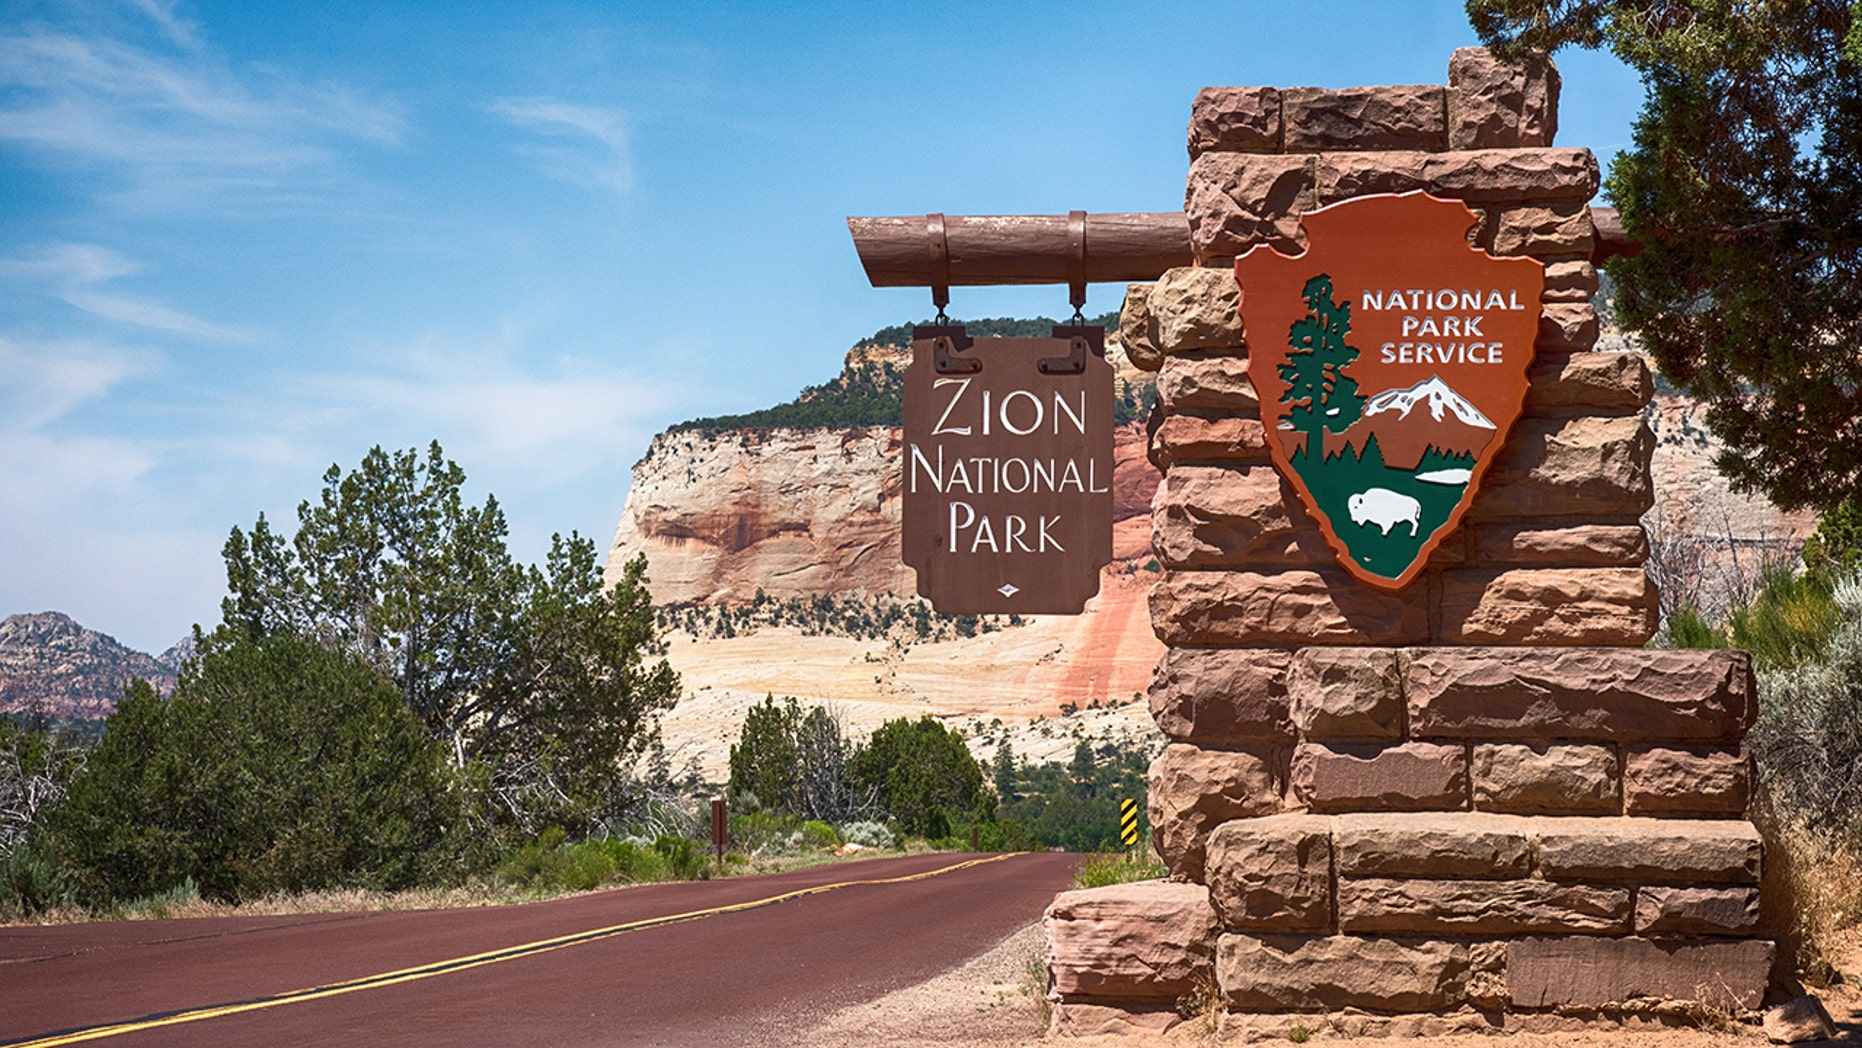 The man was stuck in quicksand at Zion National Park for hours.